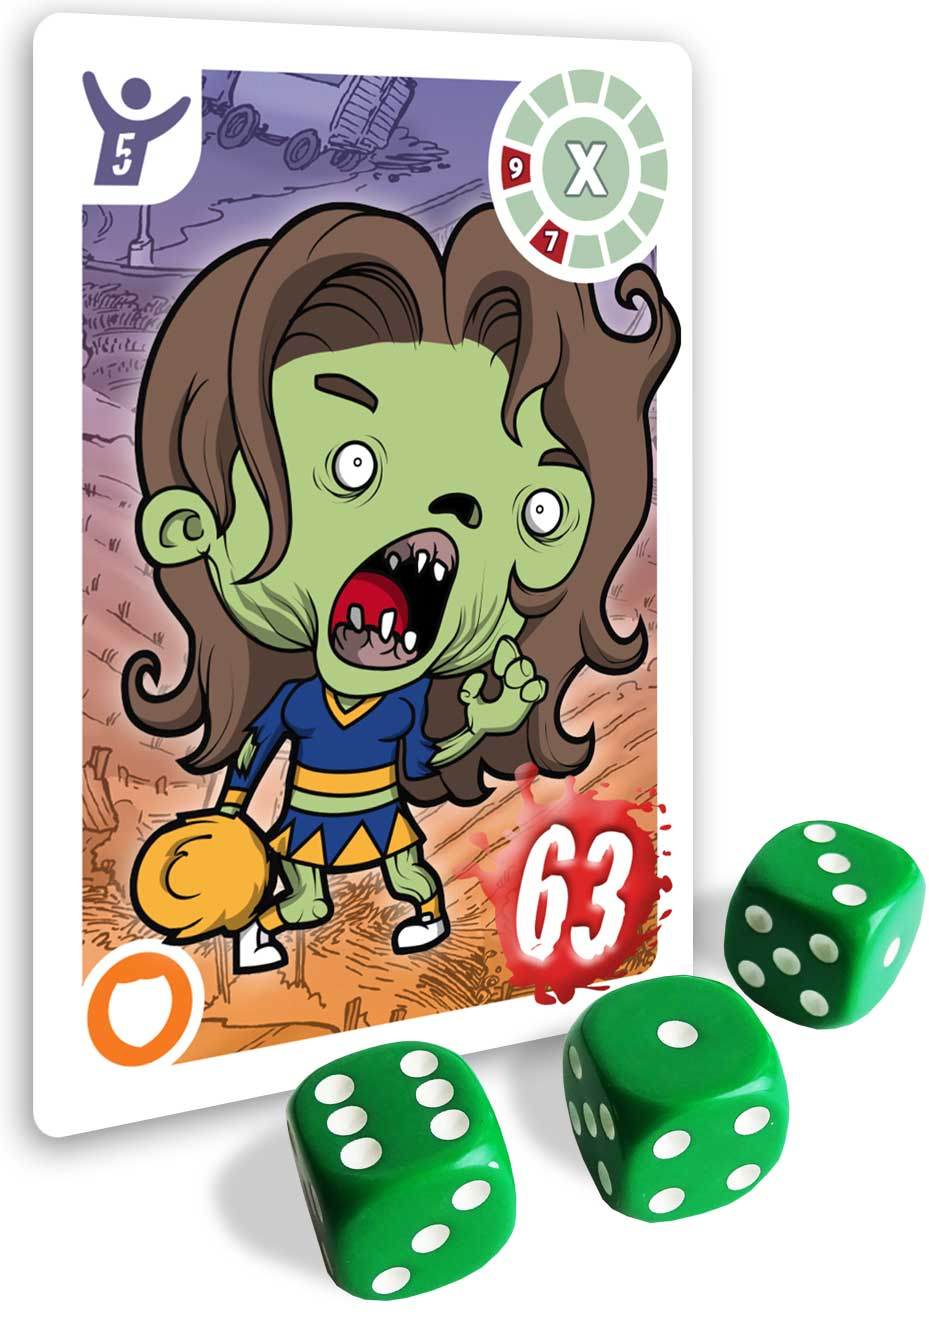 A 63 strength Zombie and some dice